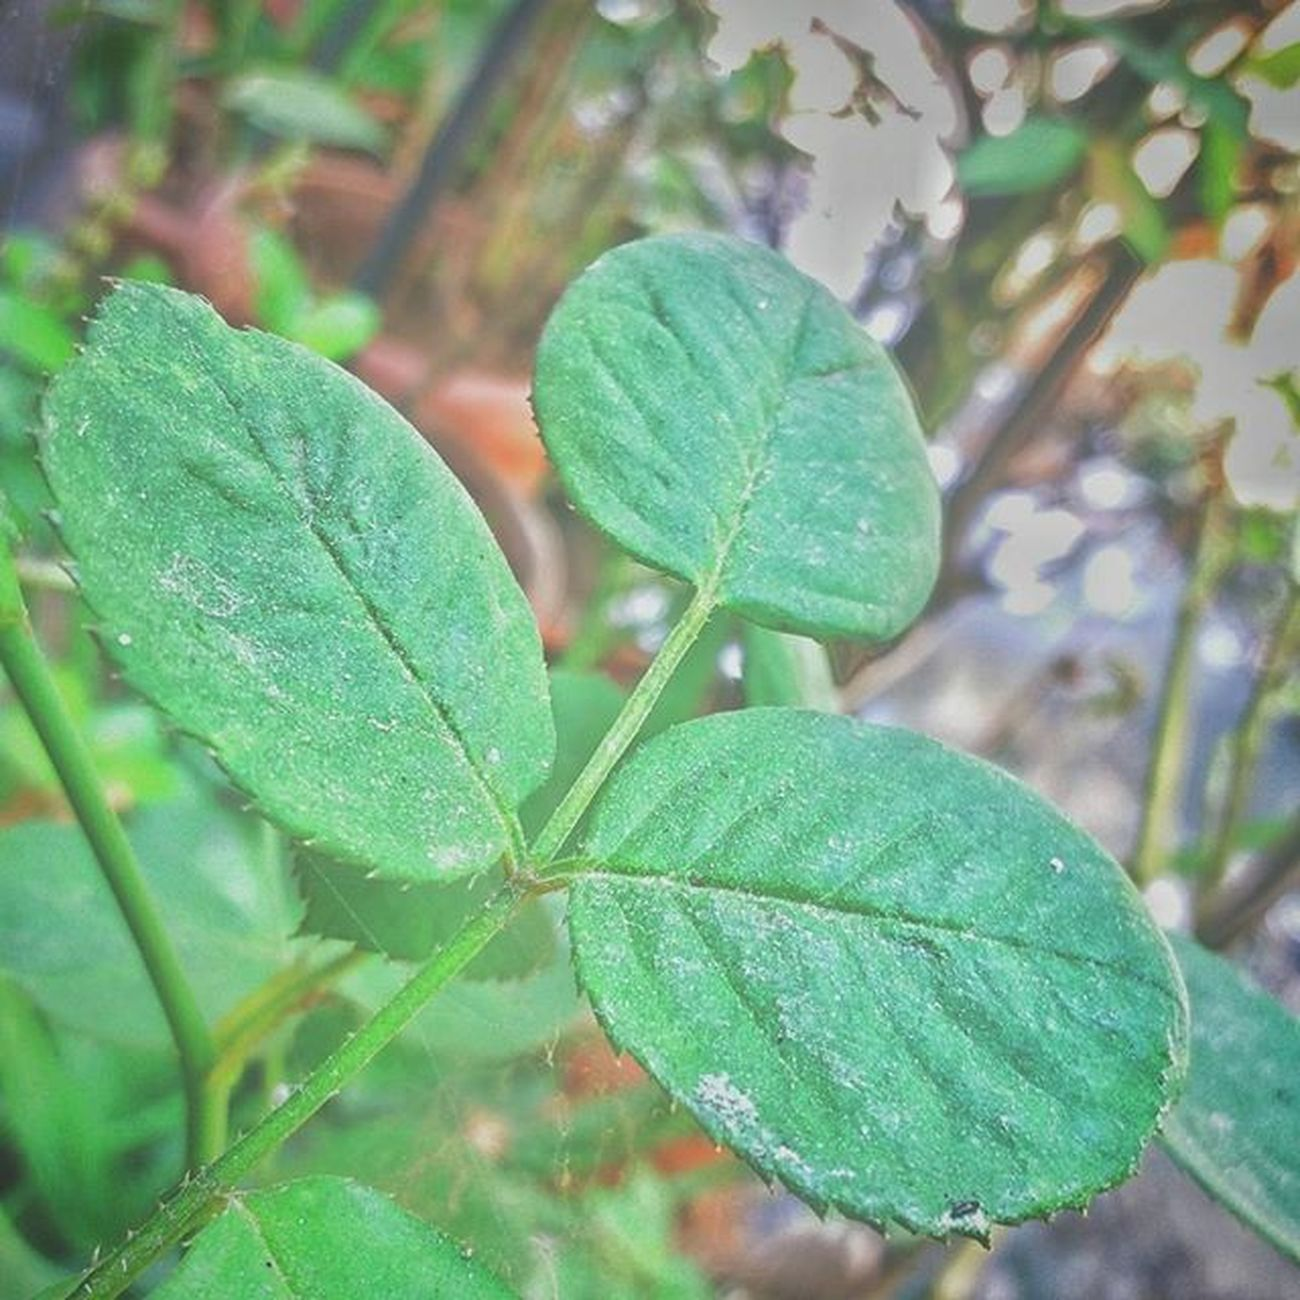 Leafs Plant Green Greenery Scenery Learning PhonePhotography Photographyy Mobile_perfection Mobilecamera SamsungJ7 Mumbai Maharshtra Maharashtra_ig Insta_maharashtra Phodus Mumbaimerijaan Mumbaidairies Mumbaistagram Imagebazaar Naturewalk  Natgeo Nature Naturebueaty Naturelovers Indianphotographersclub indianphotographer firstlookindia inspiroindia ngma mumbaibizarre